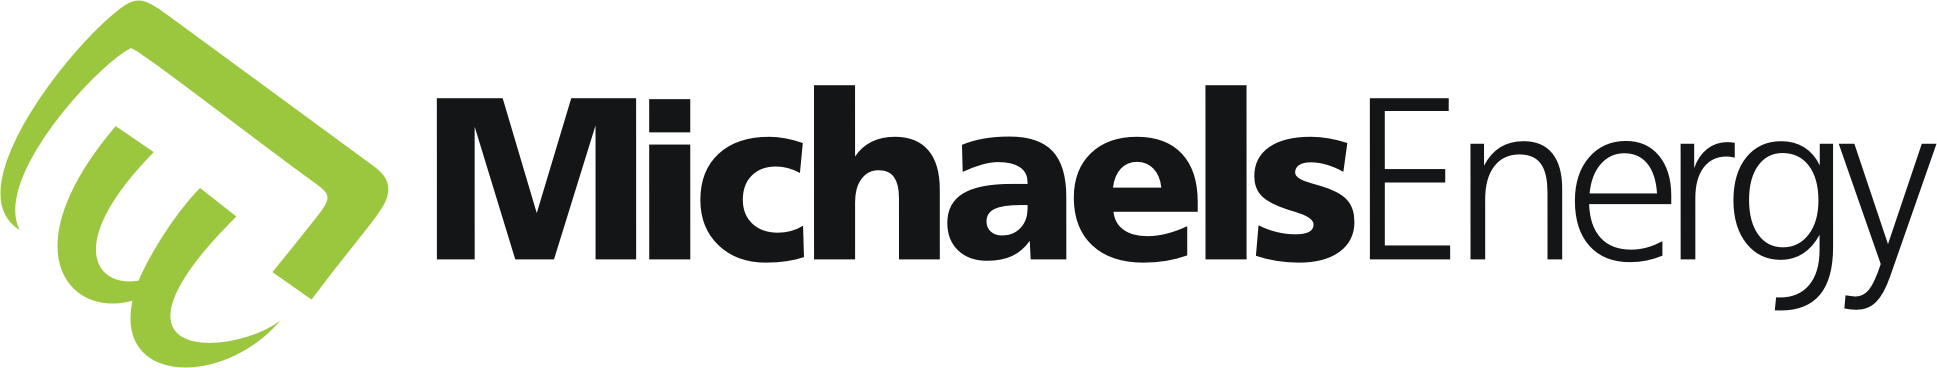 michaels energy logo